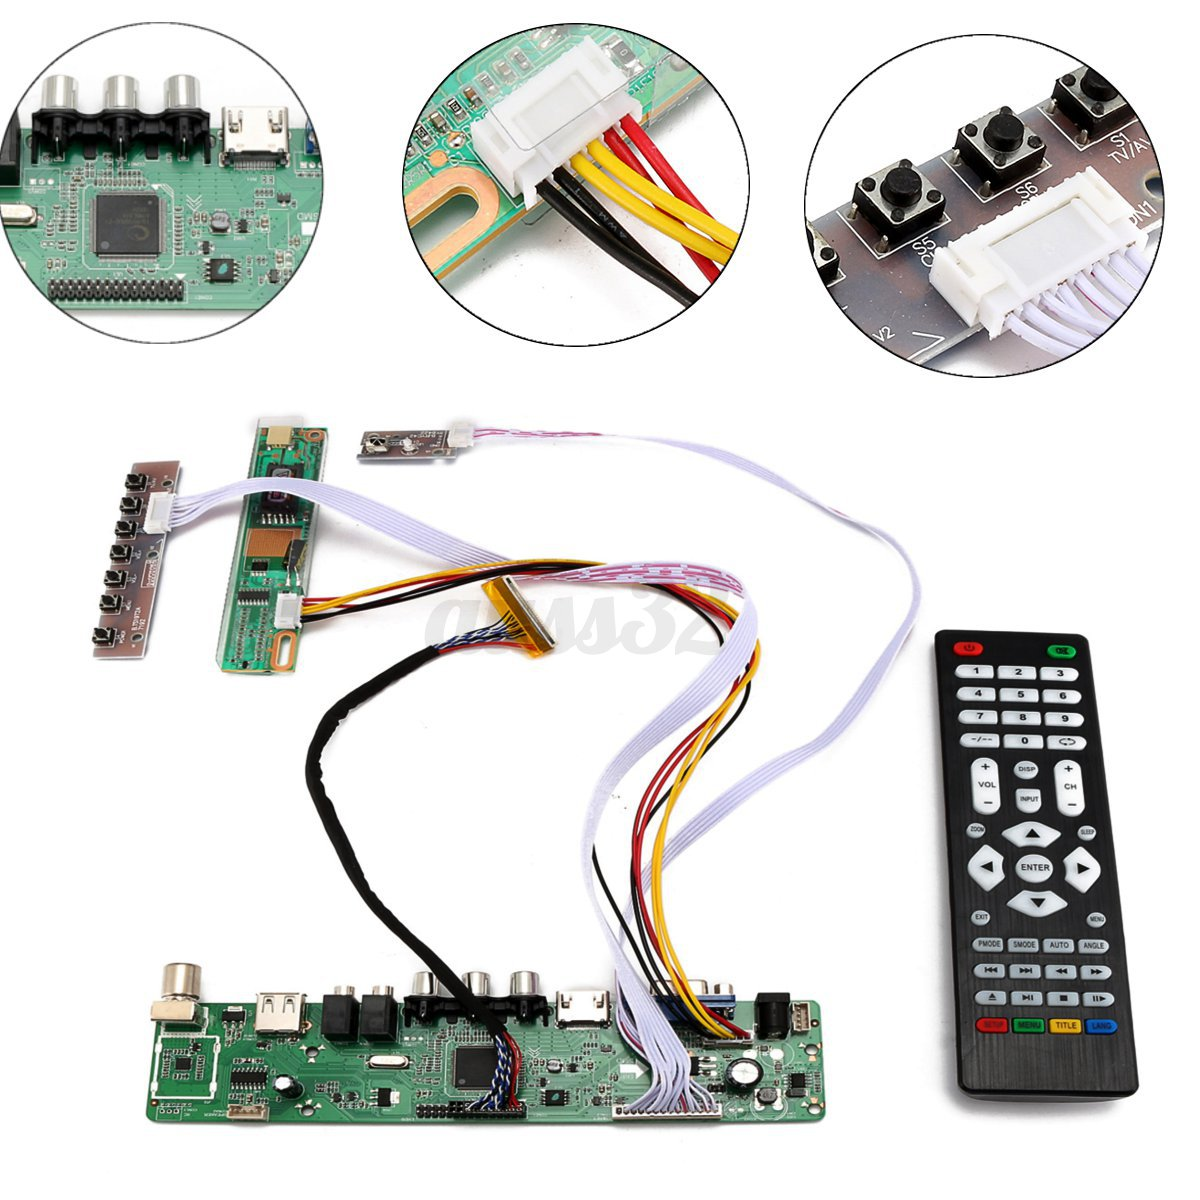 tv universal lcd led screen controller board diy monitor kit with remote control ebay. Black Bedroom Furniture Sets. Home Design Ideas